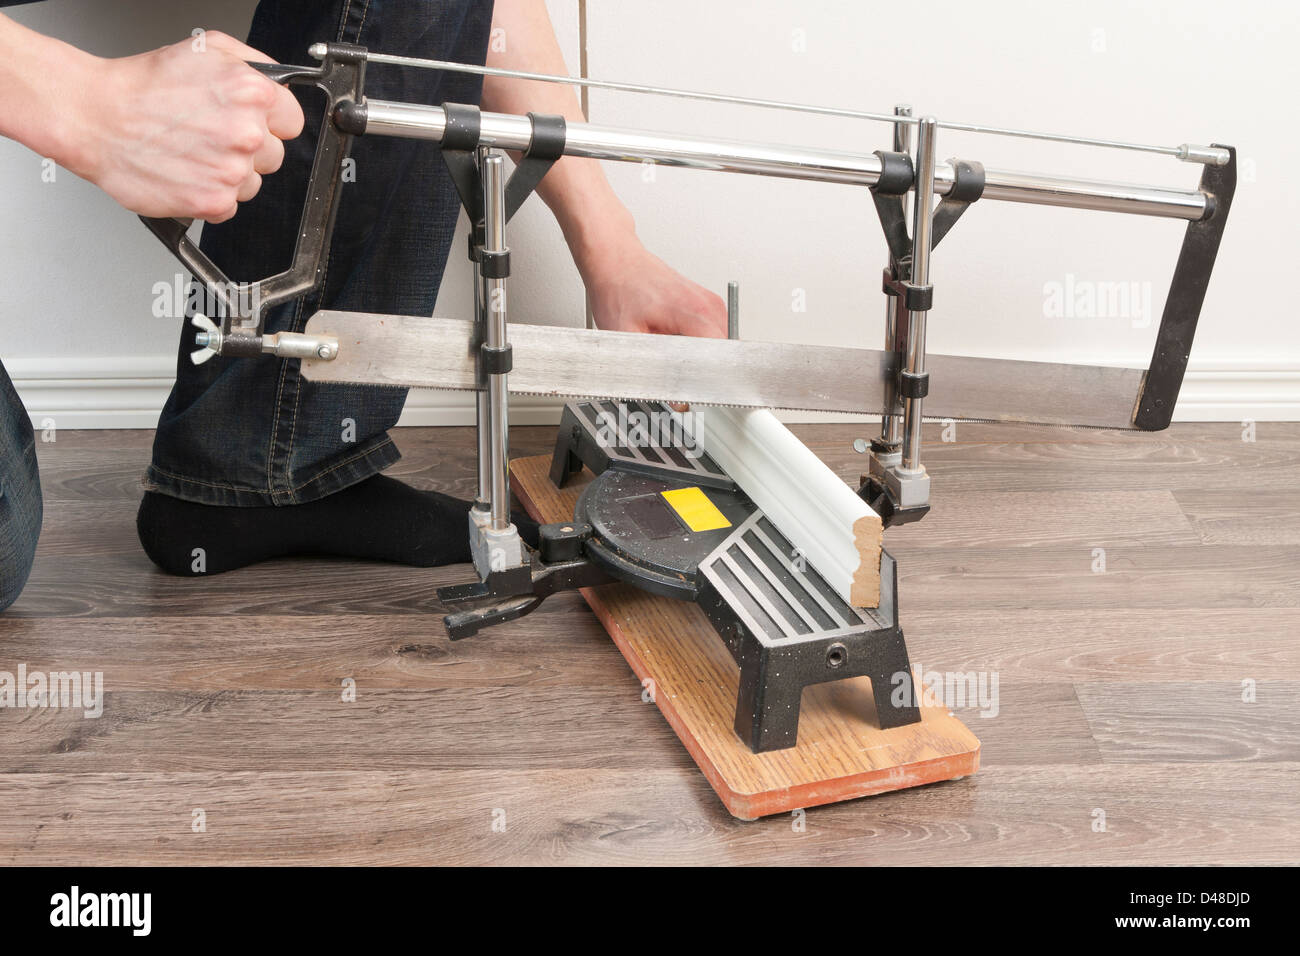 Worker Sawing Mopboard - Stock Image